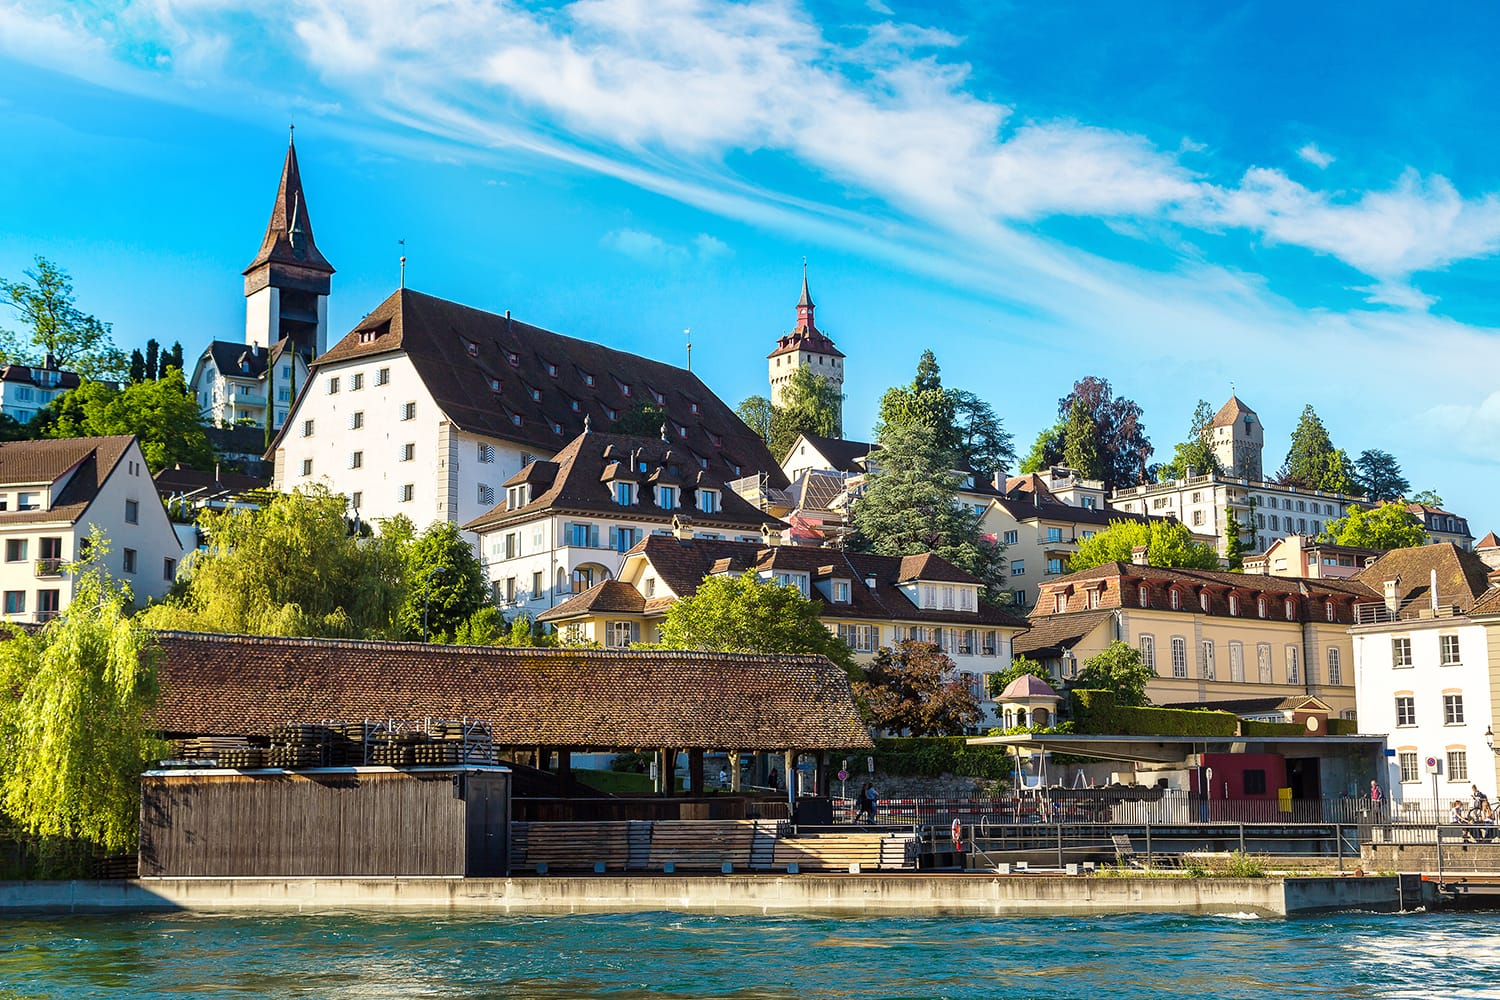 Historical city center of Lucerne in a beautiful summer day, Switzerland